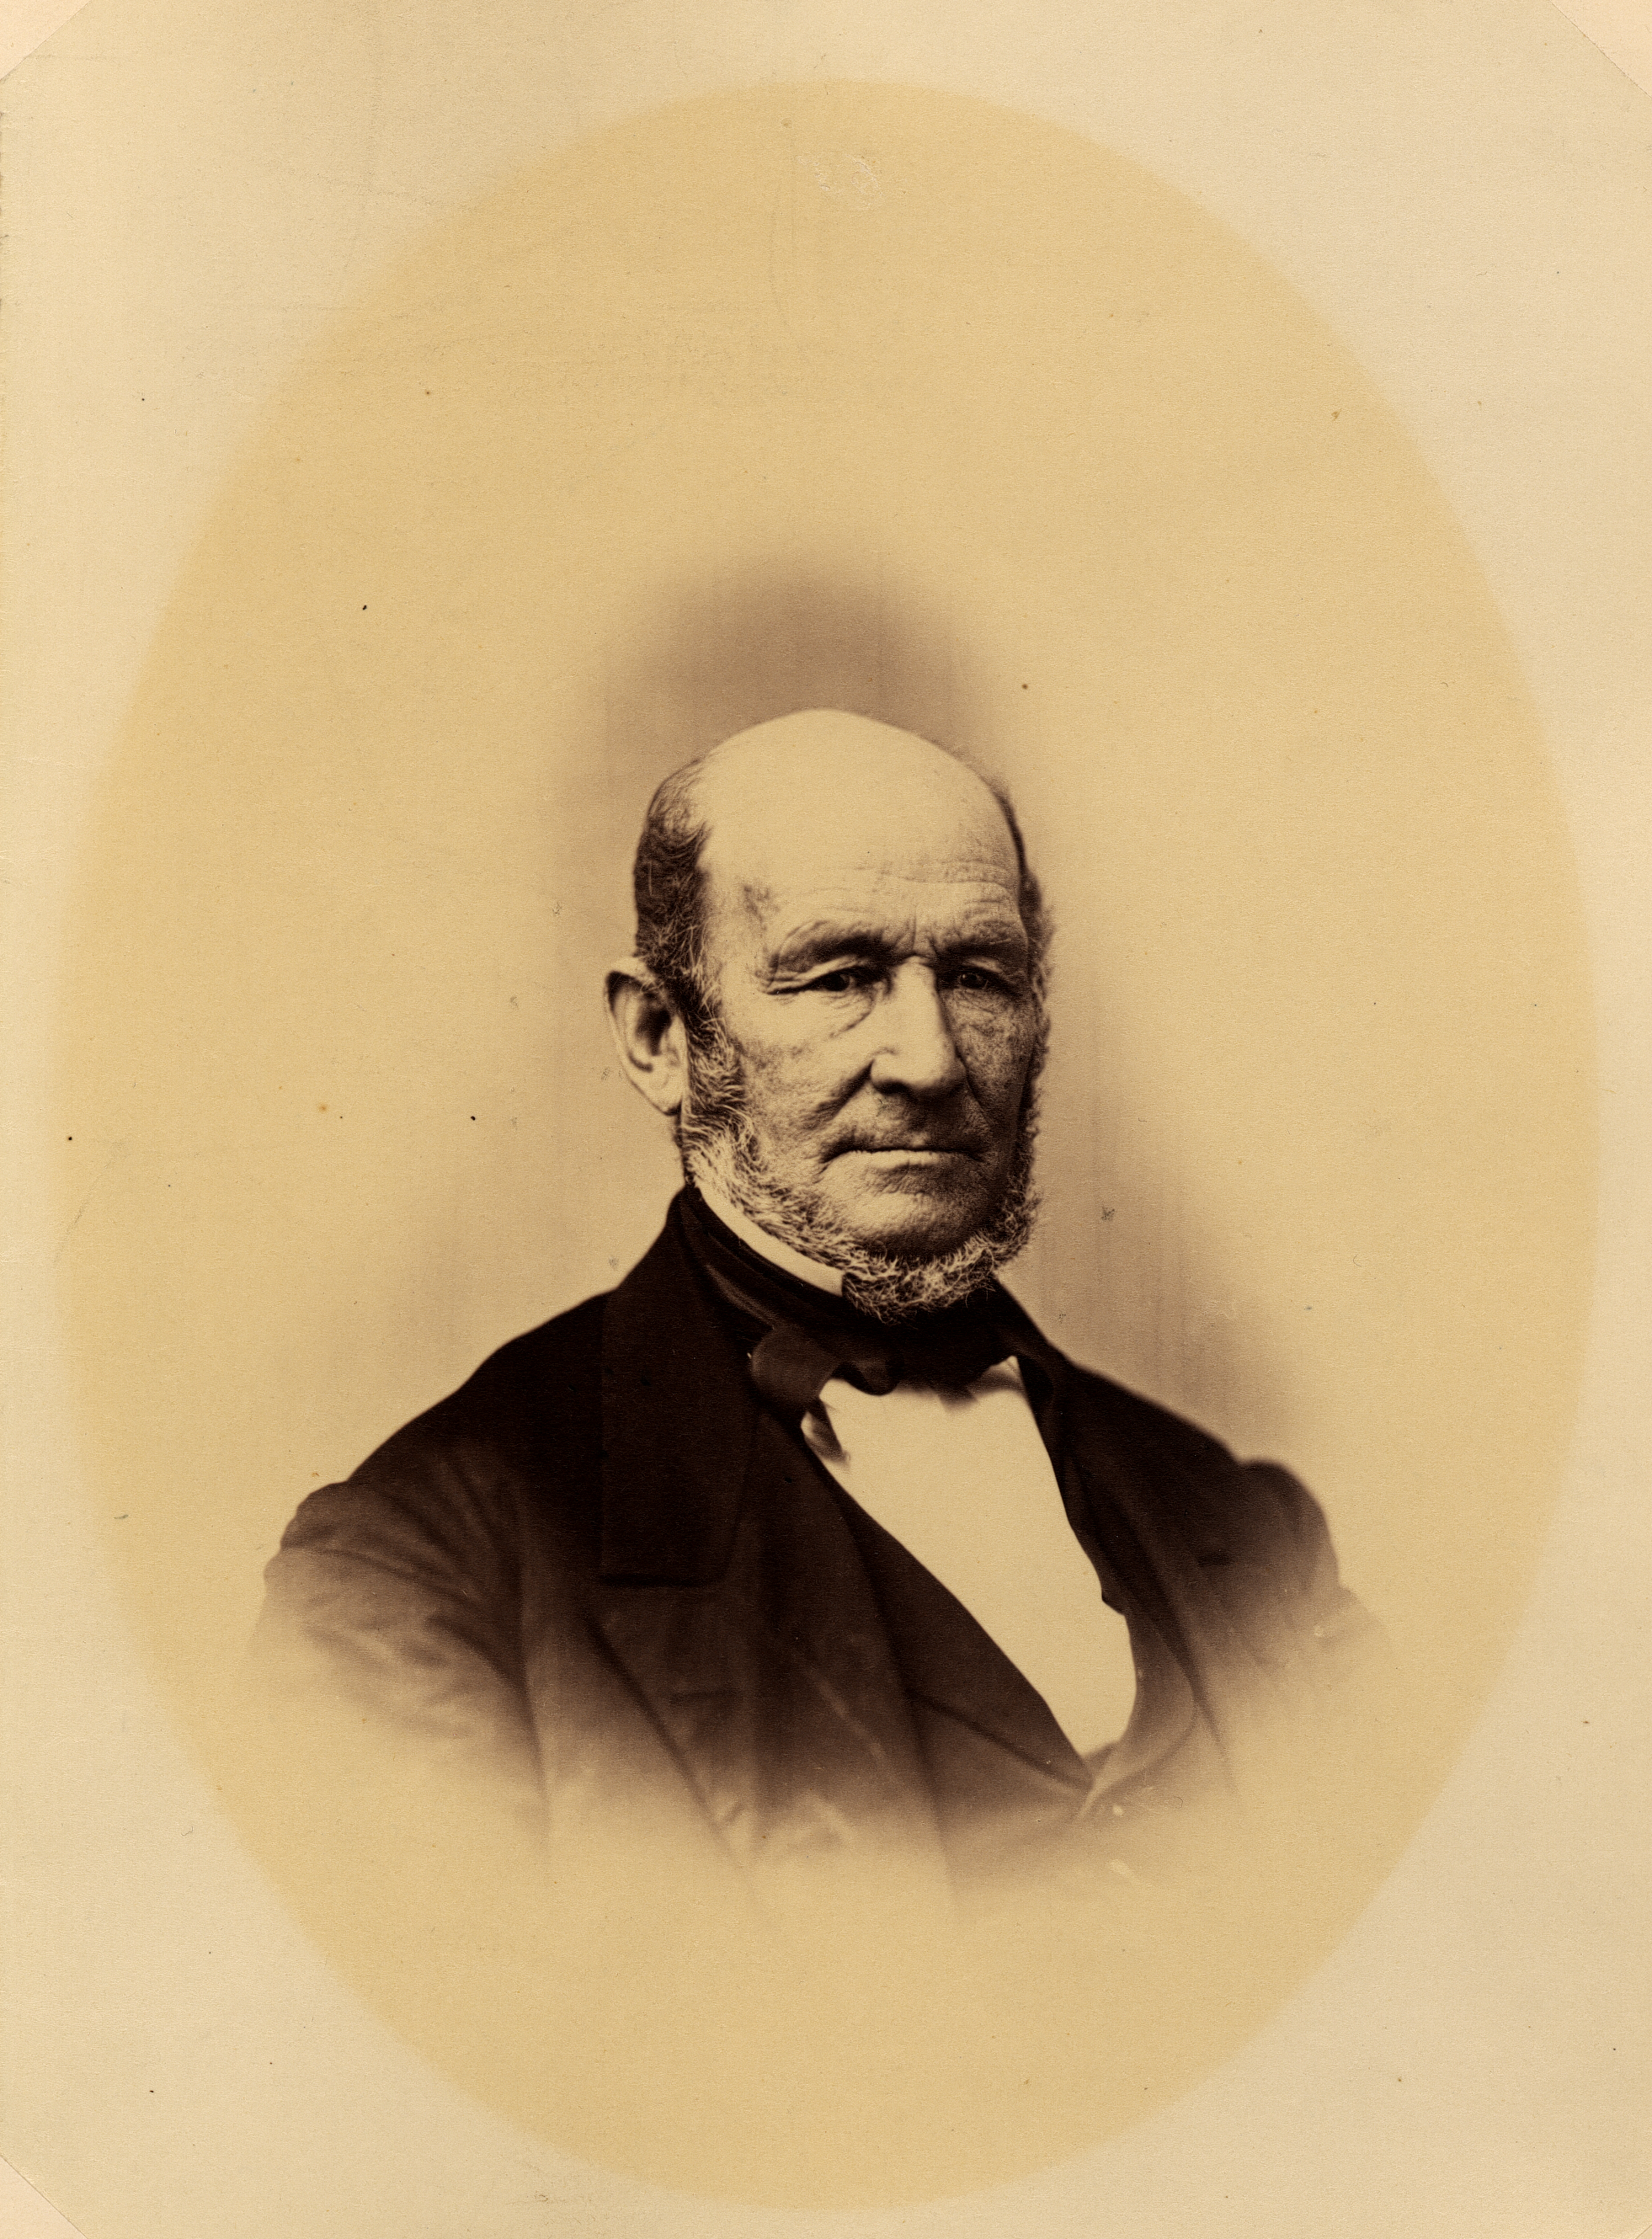 Heber C. Kimball, October 7, 1853